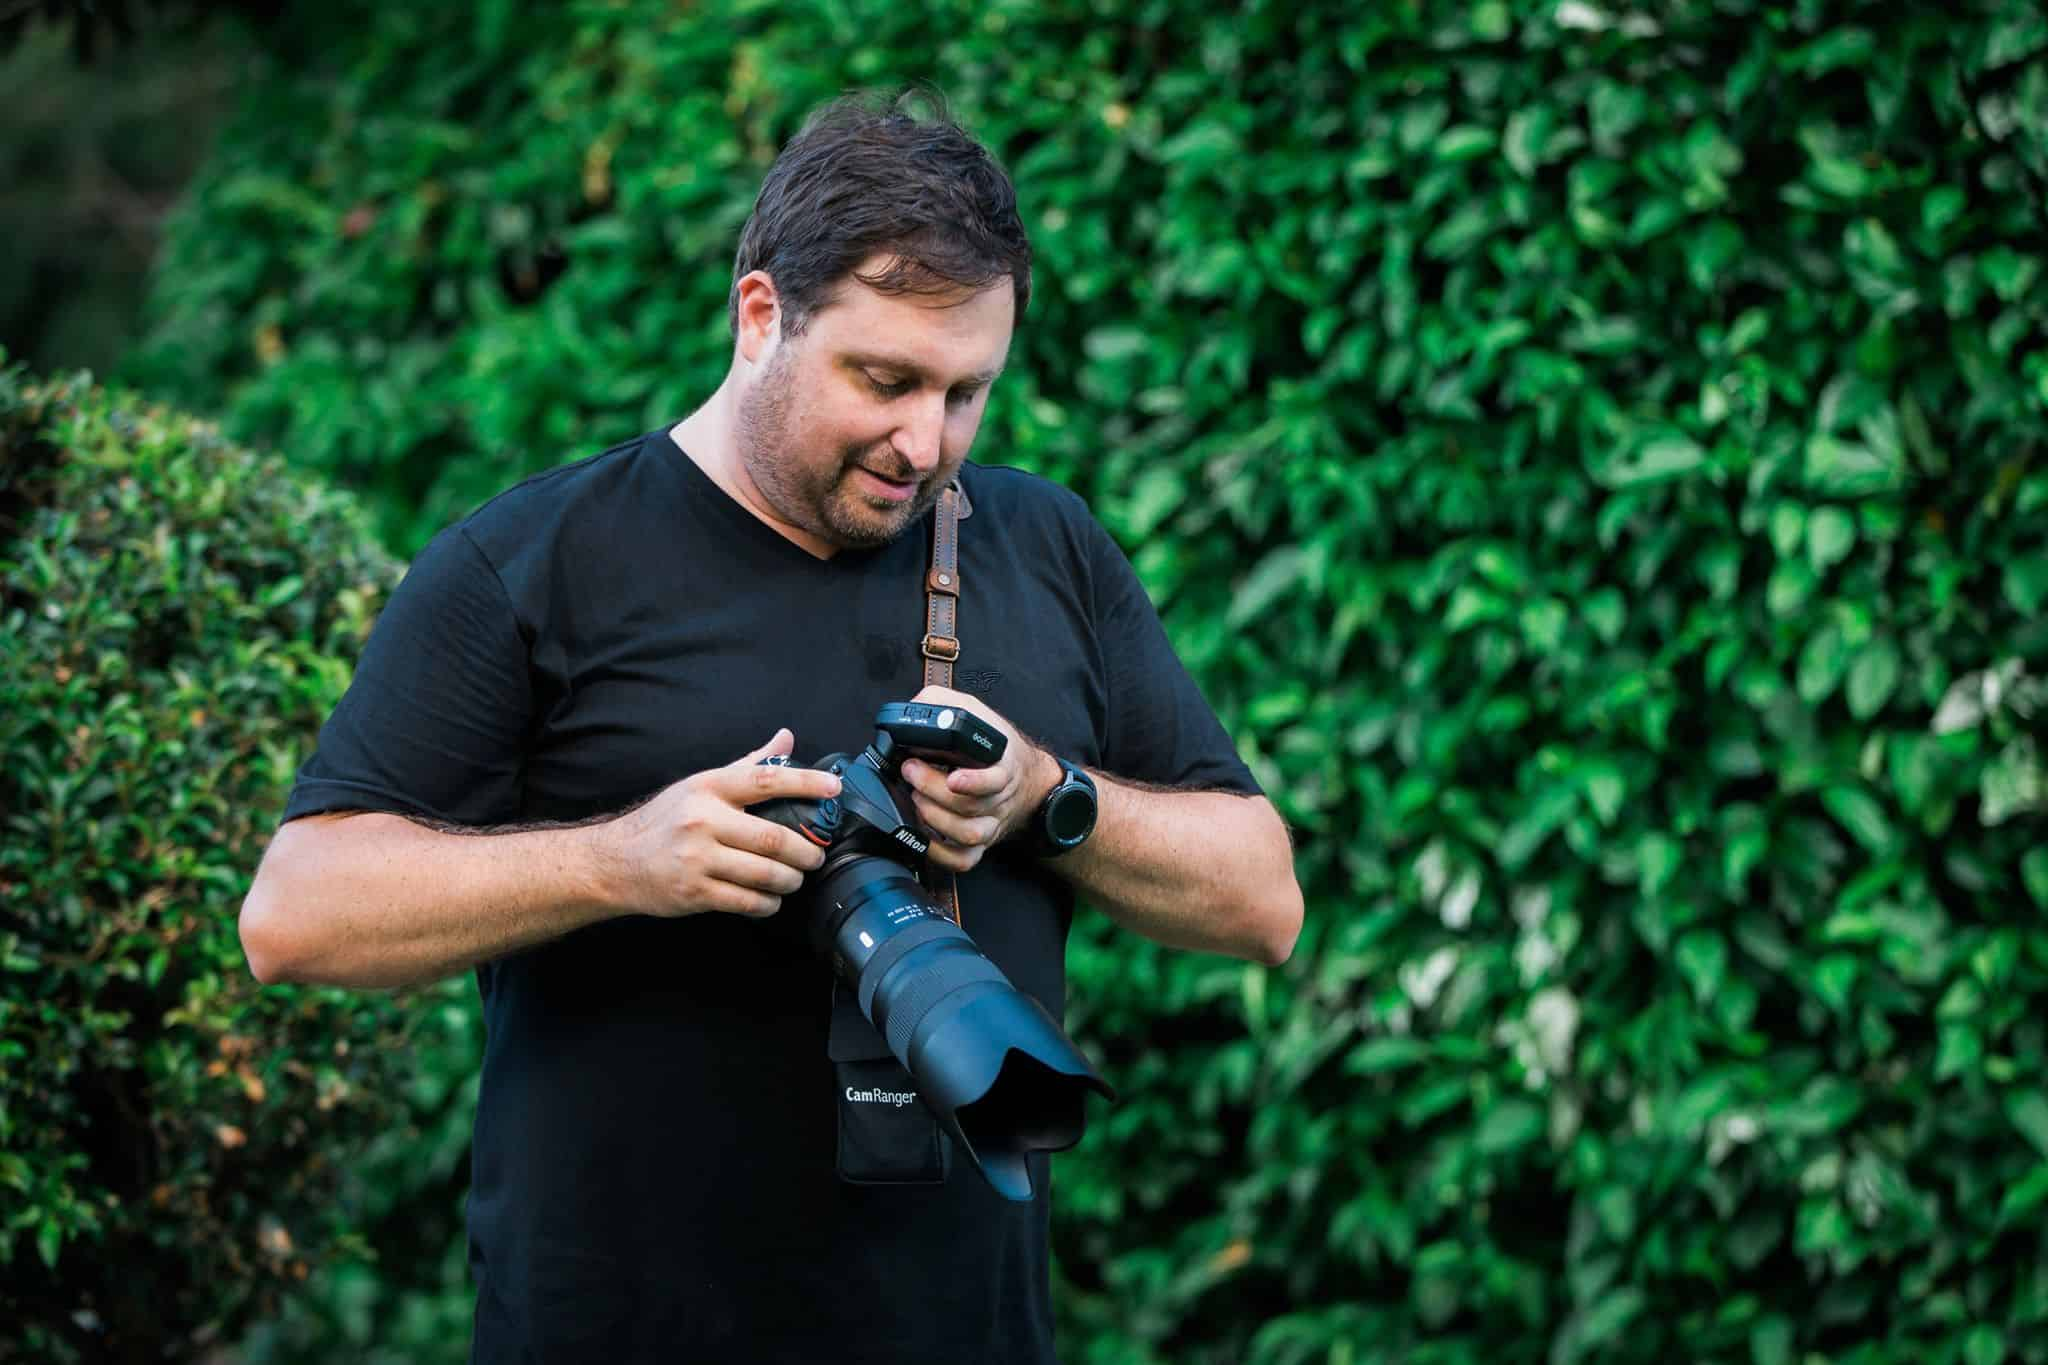 The owner of Crew One Photography operating his camera